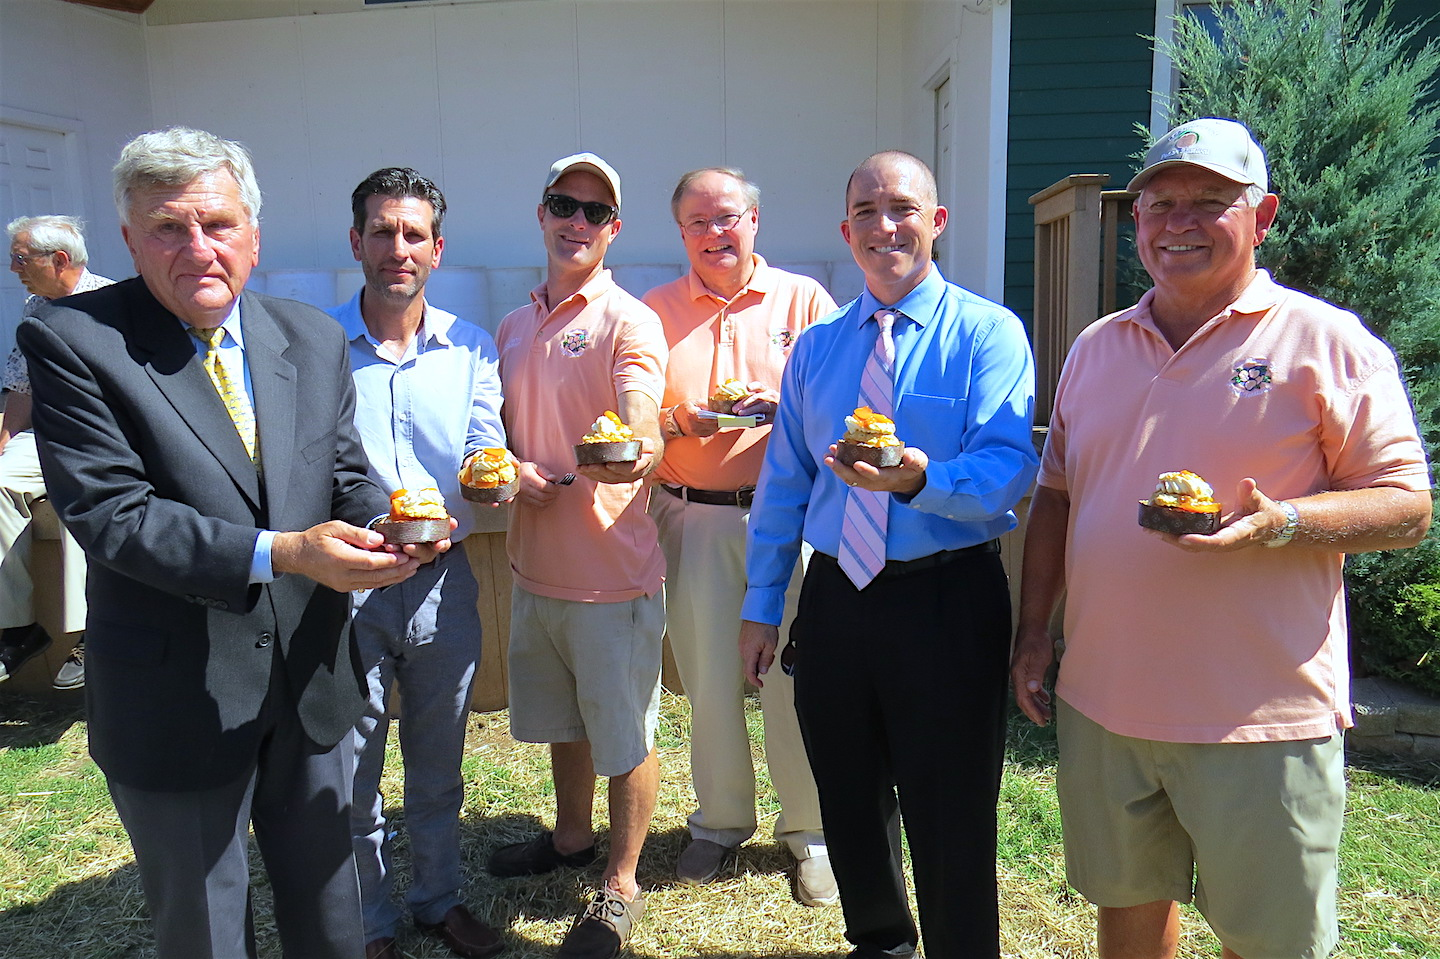 From left: Veteran Peach Festival Advisory Chairman Jerry Wolfgang, Niagara Falls Culinary Institute Division Chairman Mark Mistriner, Peach Festival Chairman Alan Hastings, Kiwanis Club of Lewiston President the Rev. Tom Mason, Former President Marty Pauly and 5k Run Chairman Randy Gorzka addressed the media Wednesday, as local leaders provided support. Following the briefing, samples of the Peach Festival's famous peach shortcake were distributed.